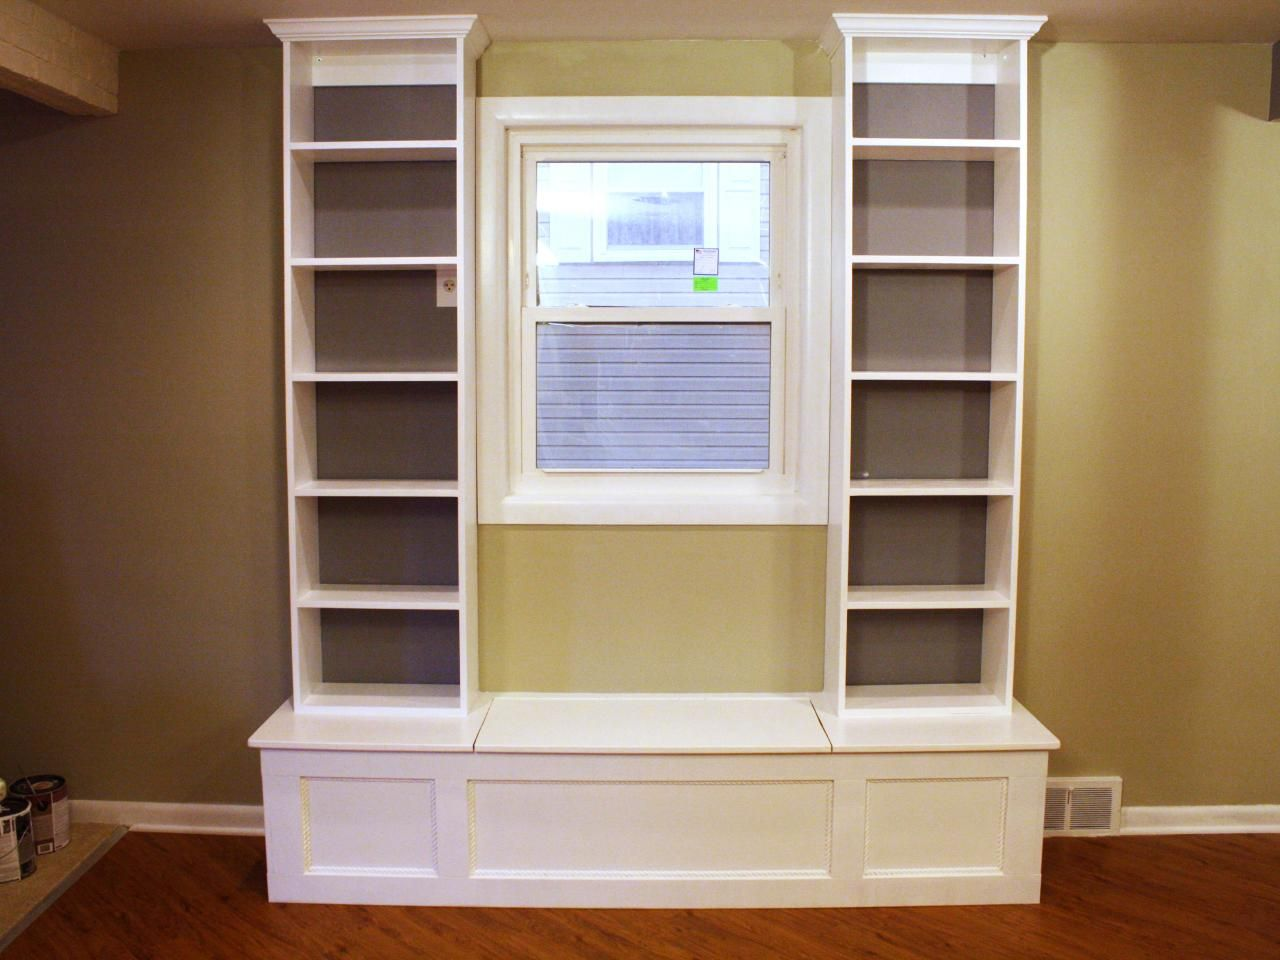 How To Build A Window Bench With Shelving Diy Window Seat Window Seat Kitchen Window Benches